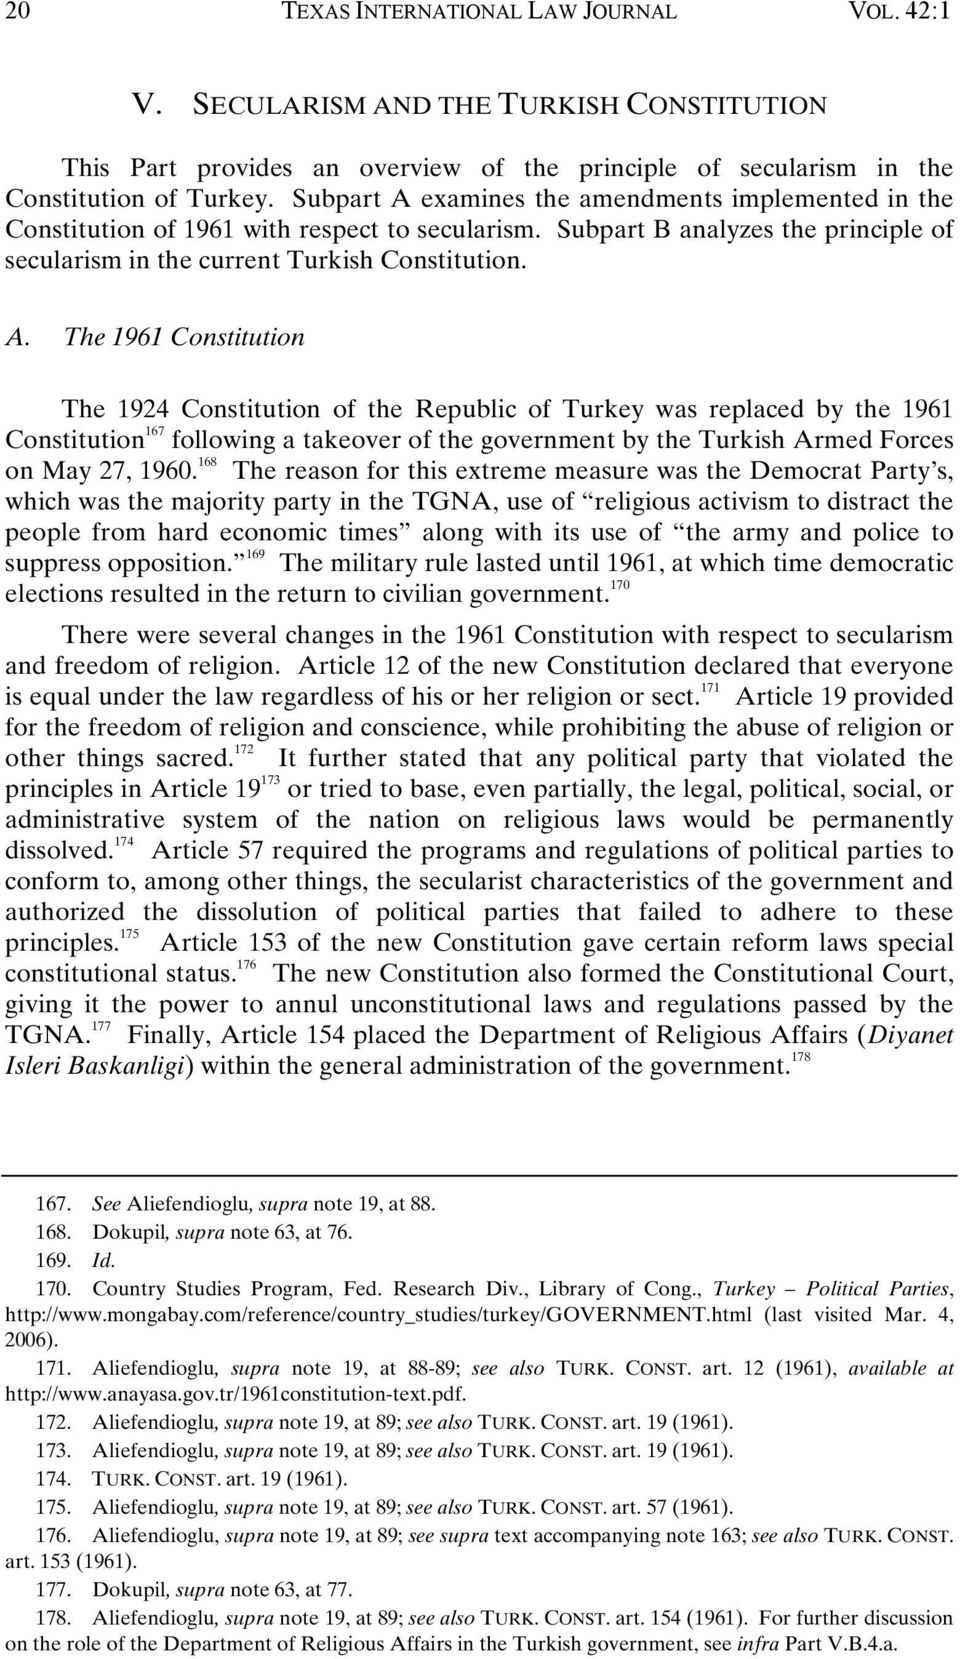 examines the amendments implemented in the Constitution of 1961 with respect to secularism. Subpart B analyzes the principle of secularism in the current Turkish Constitution. A.